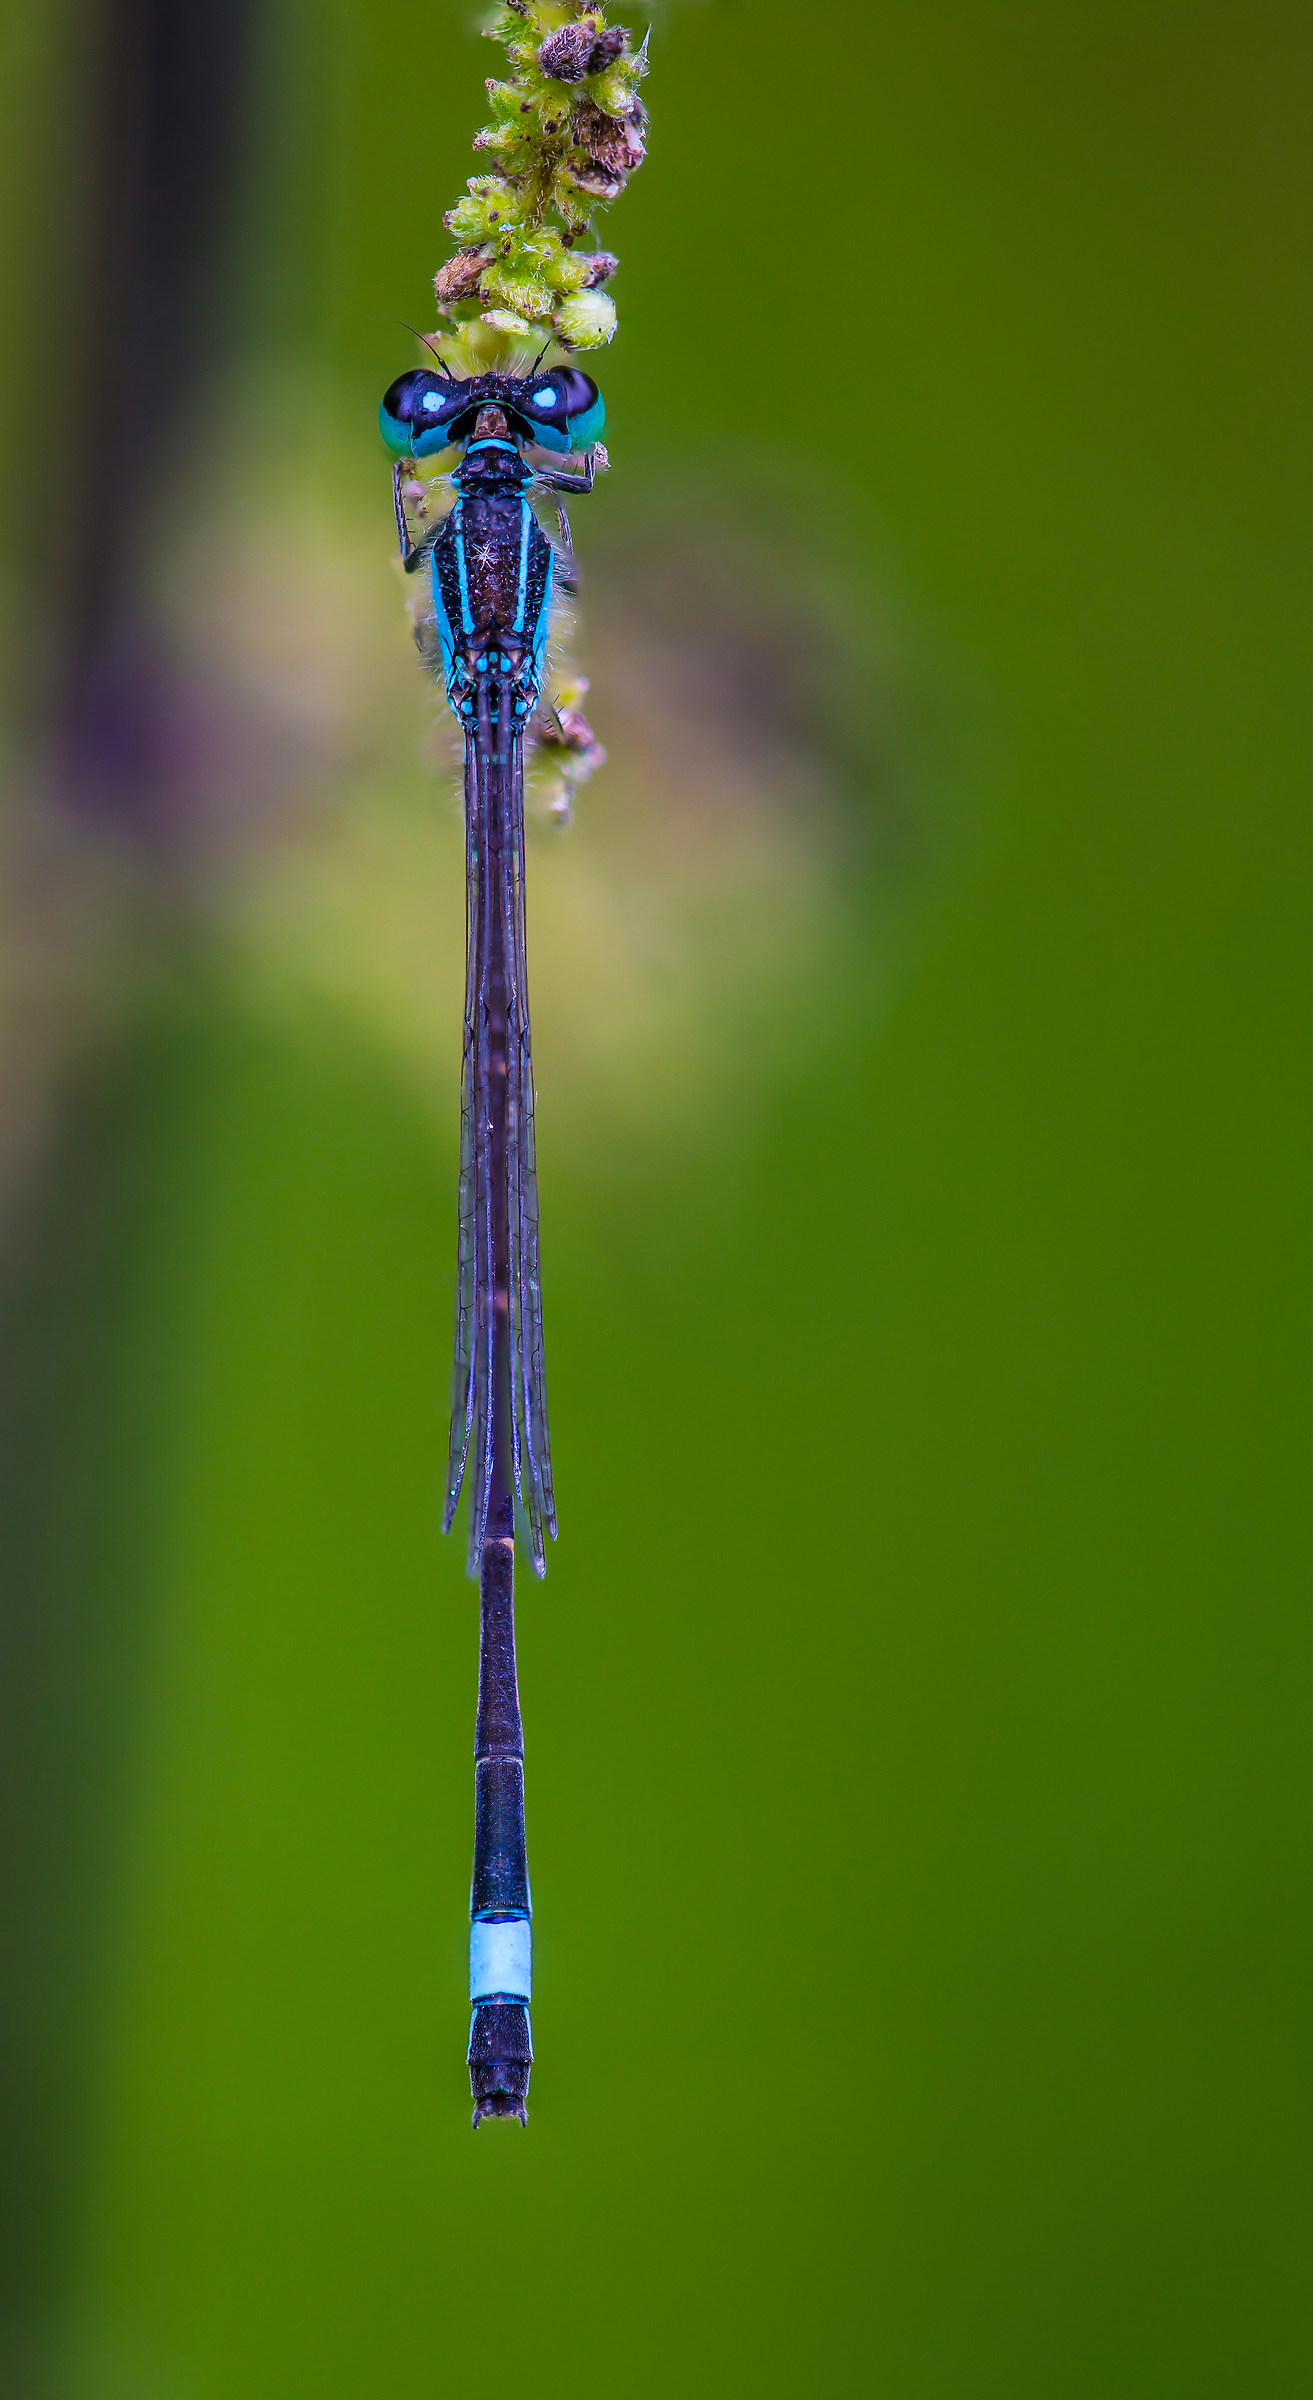 Dragonfly with sporty livery...